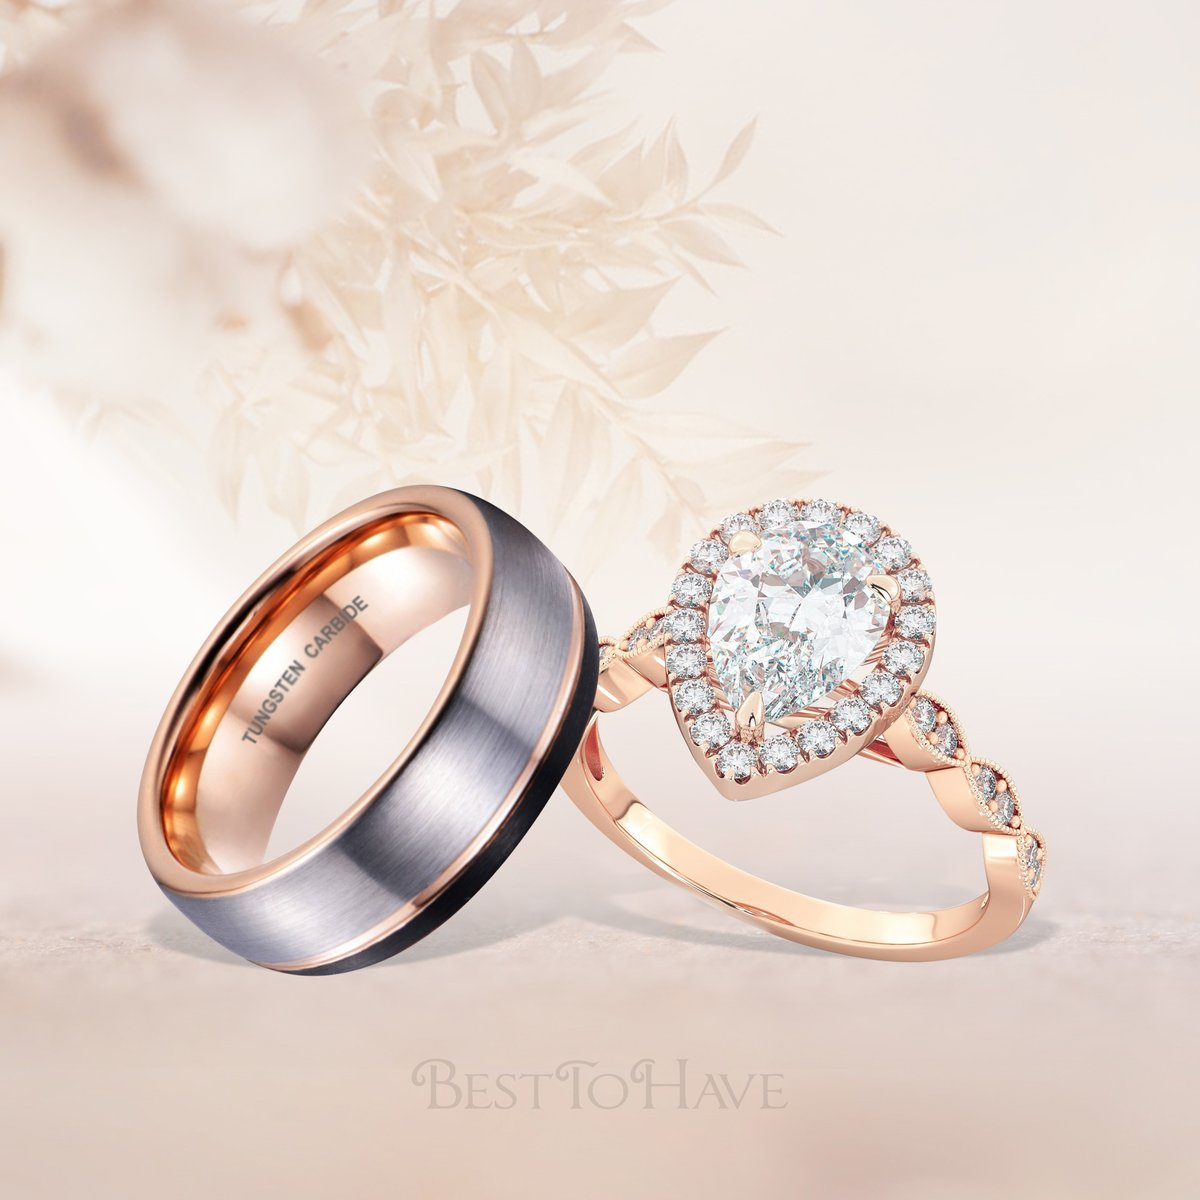 Black & rose gold tone tungsten ring Code: 444 From £24.99 & Rose gold sterling silver ring with pear cut CZ Code: 292 £22.99 Shop more:  #besttohave #besttohavejewelry #besttohaverings #hisandhers #matchingrings #wedding #engagement #weddingrings